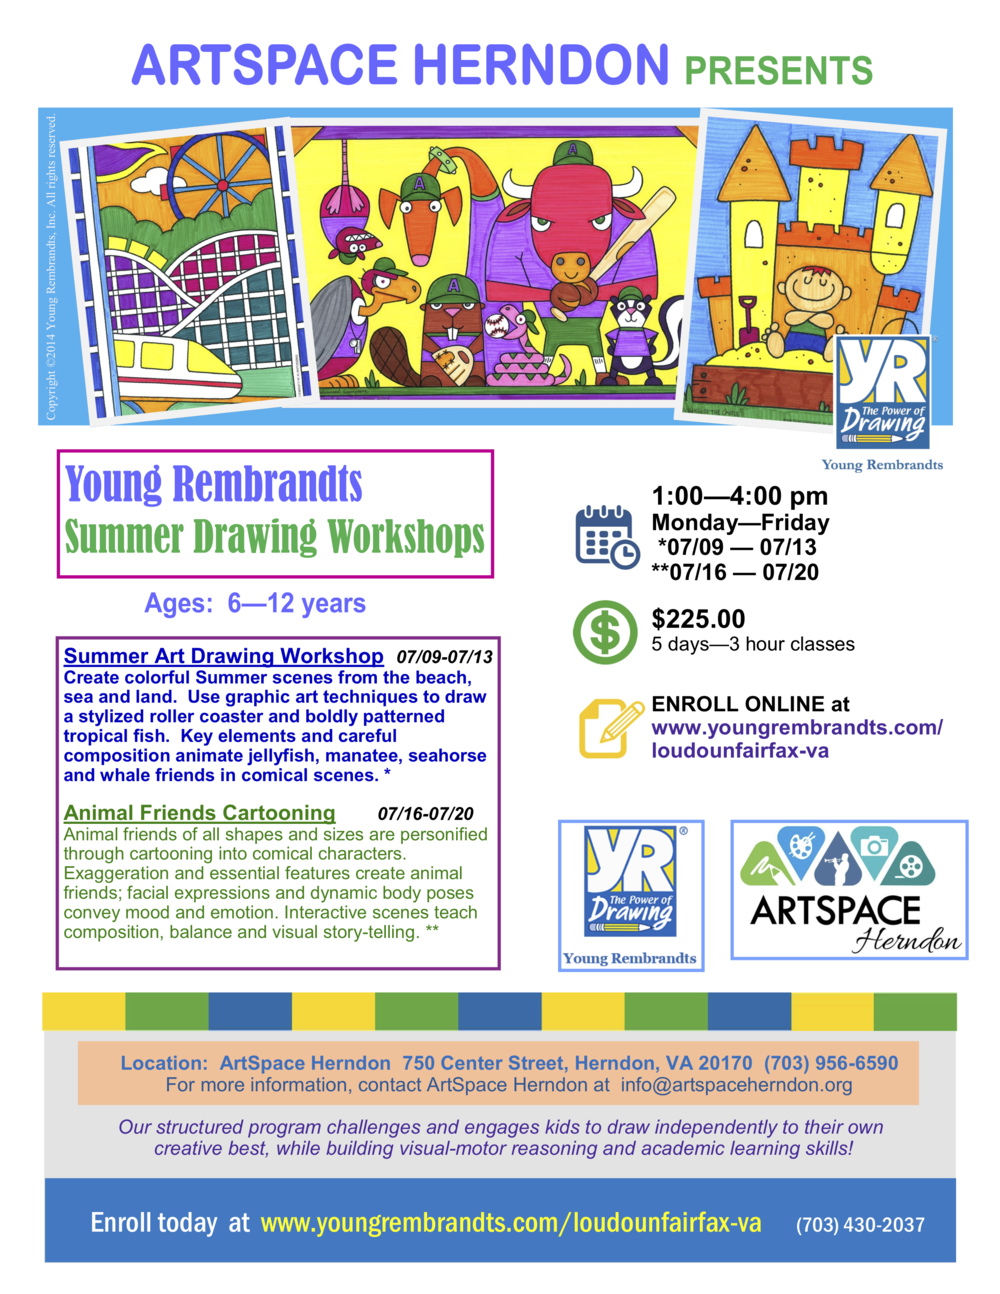 Young Rembrandts Summer Drawing Workshops — ArtSpace Herndon